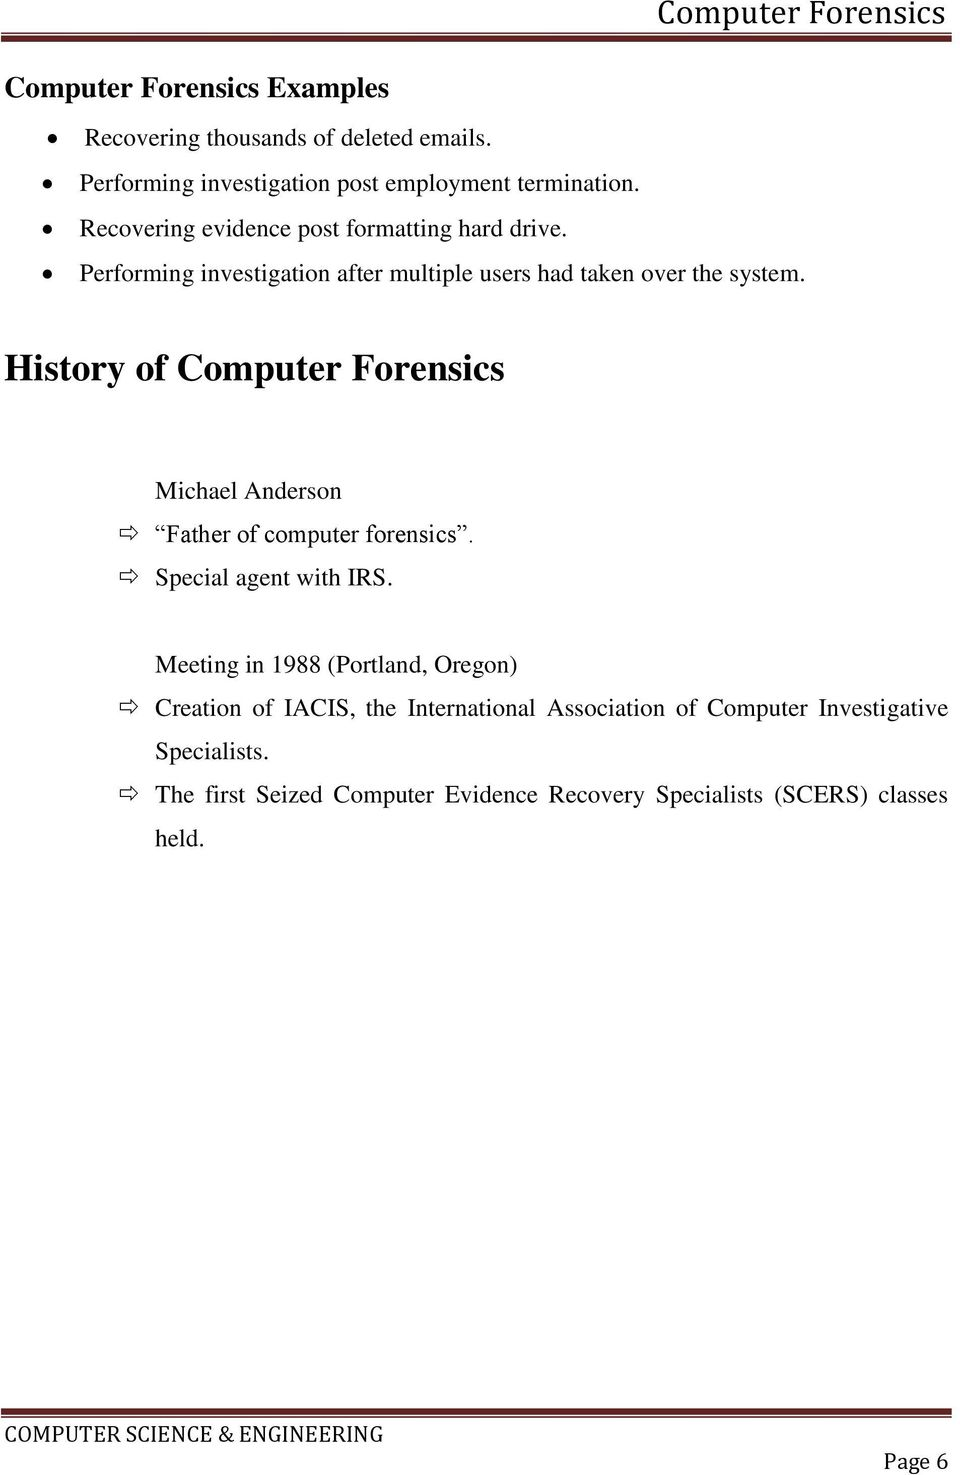 History of Computer Forensics Michael Anderson Father of computer forensics. Special agent with IRS.